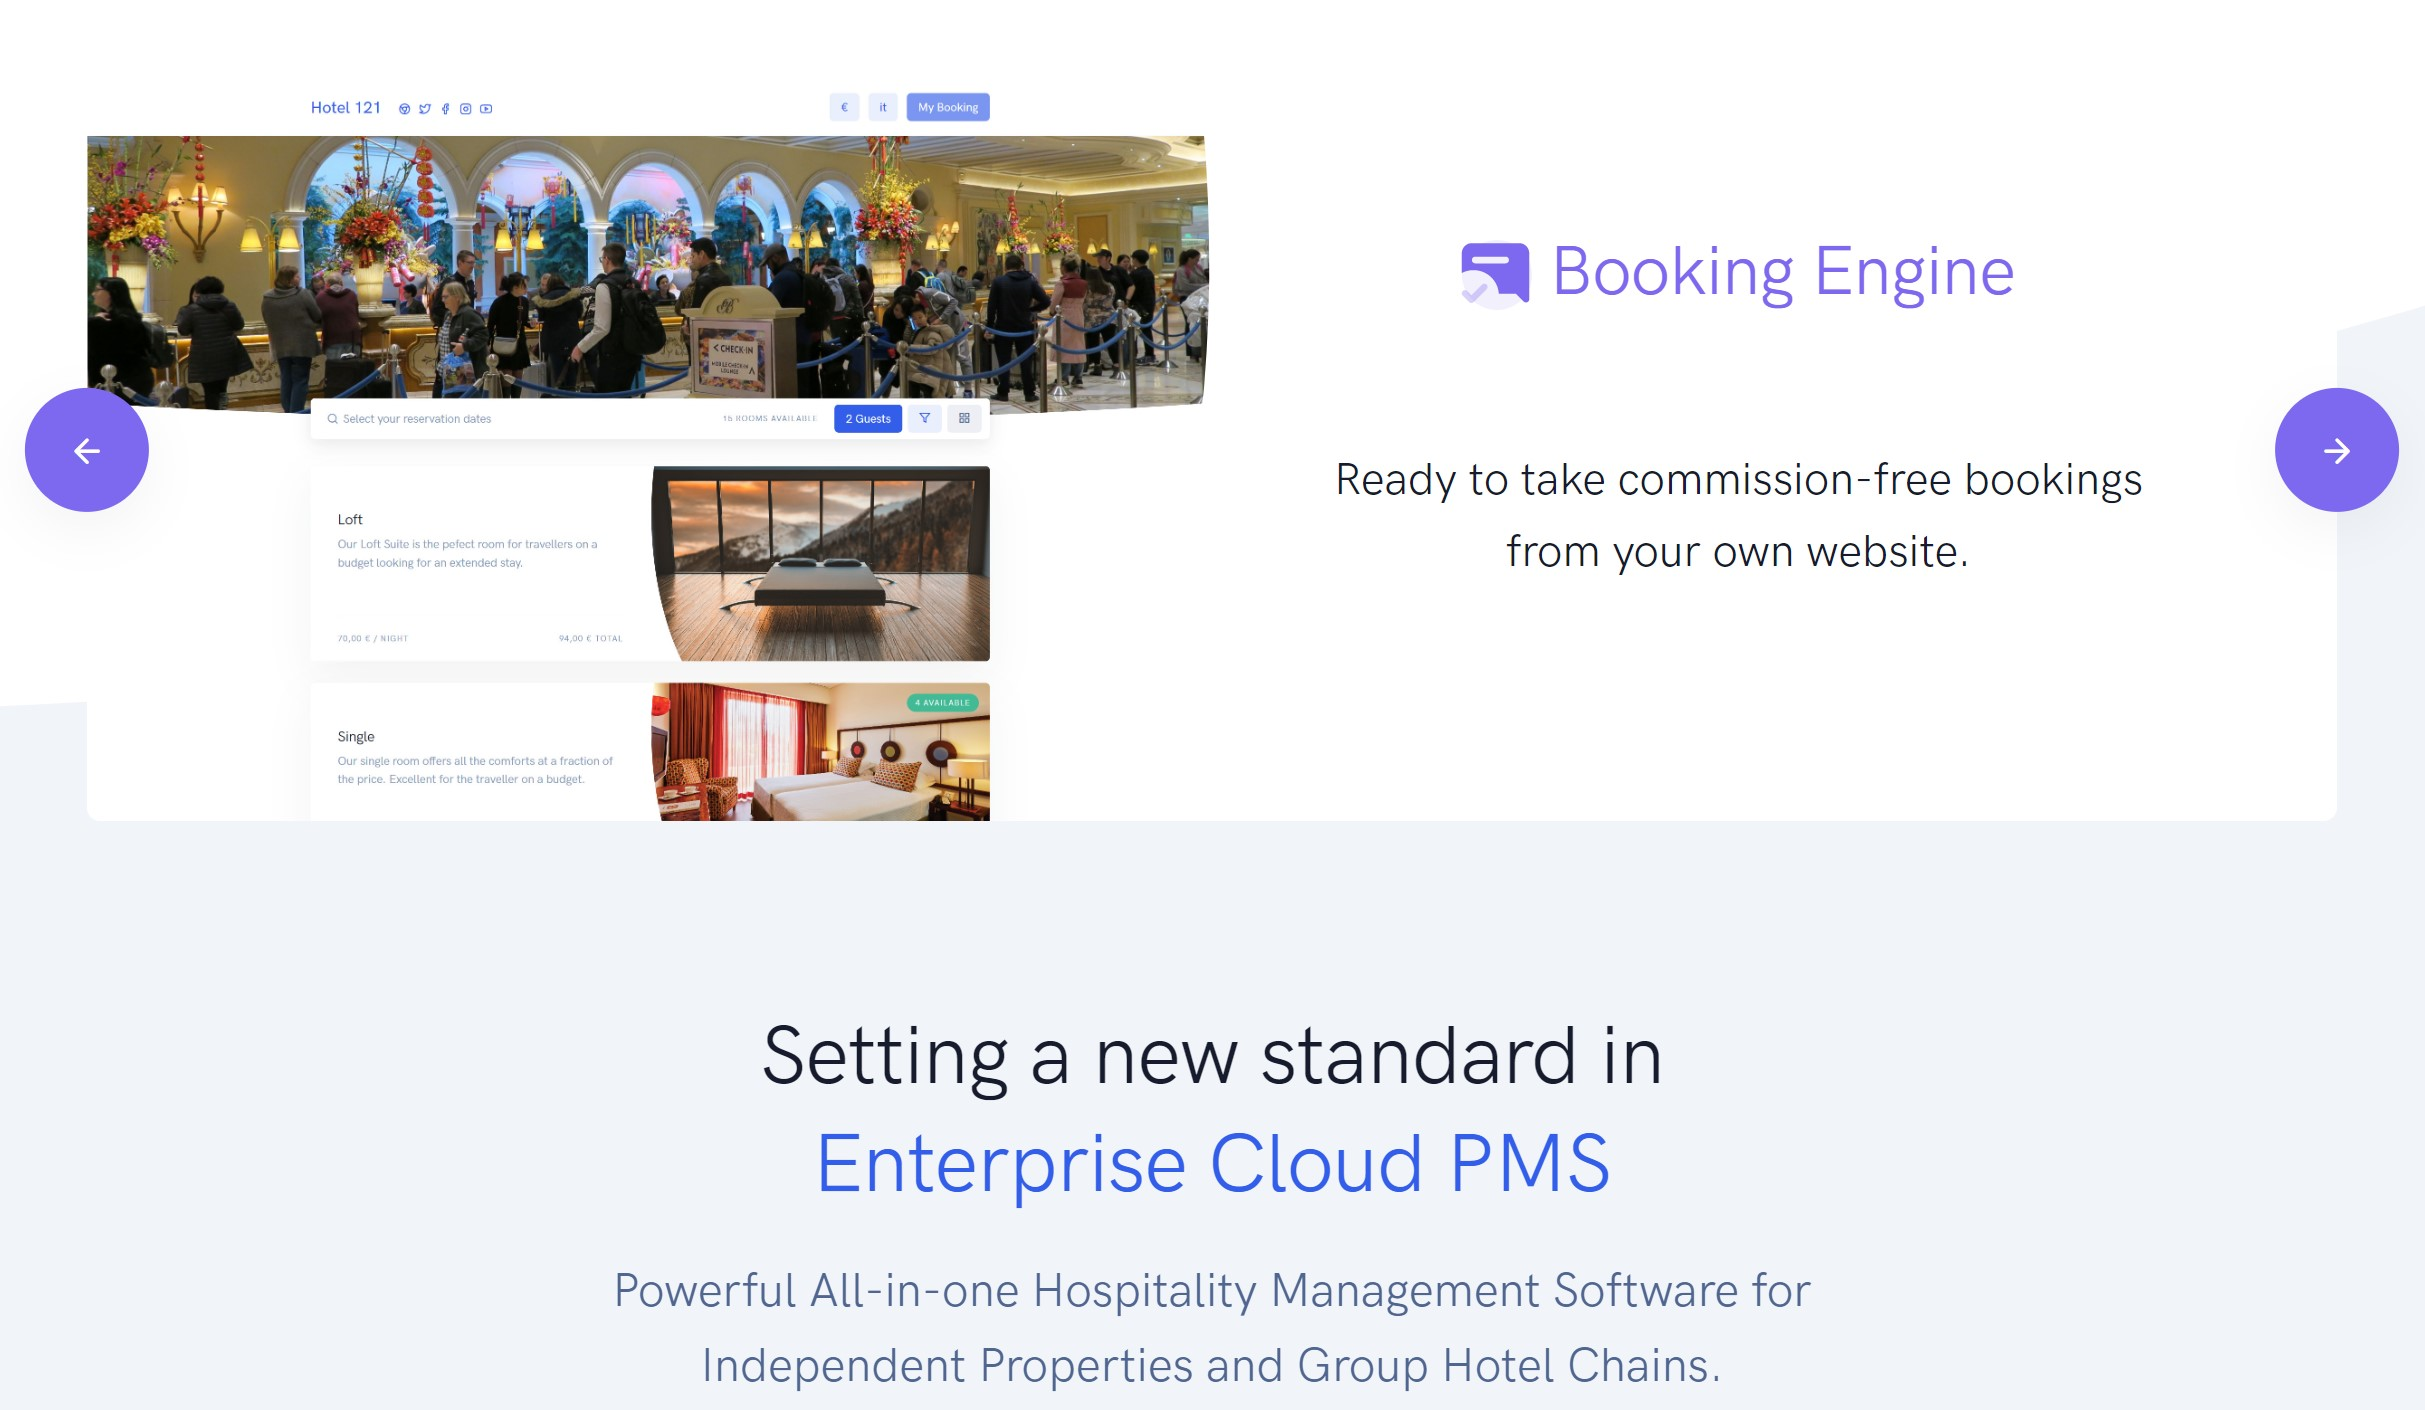 Hotel Booking Engine with Direct Booking Engine and White Label Booking Engine Your Booking Engine is ready to take reservations. All your bookings are commission free and you can use it anywhere, even your own website.